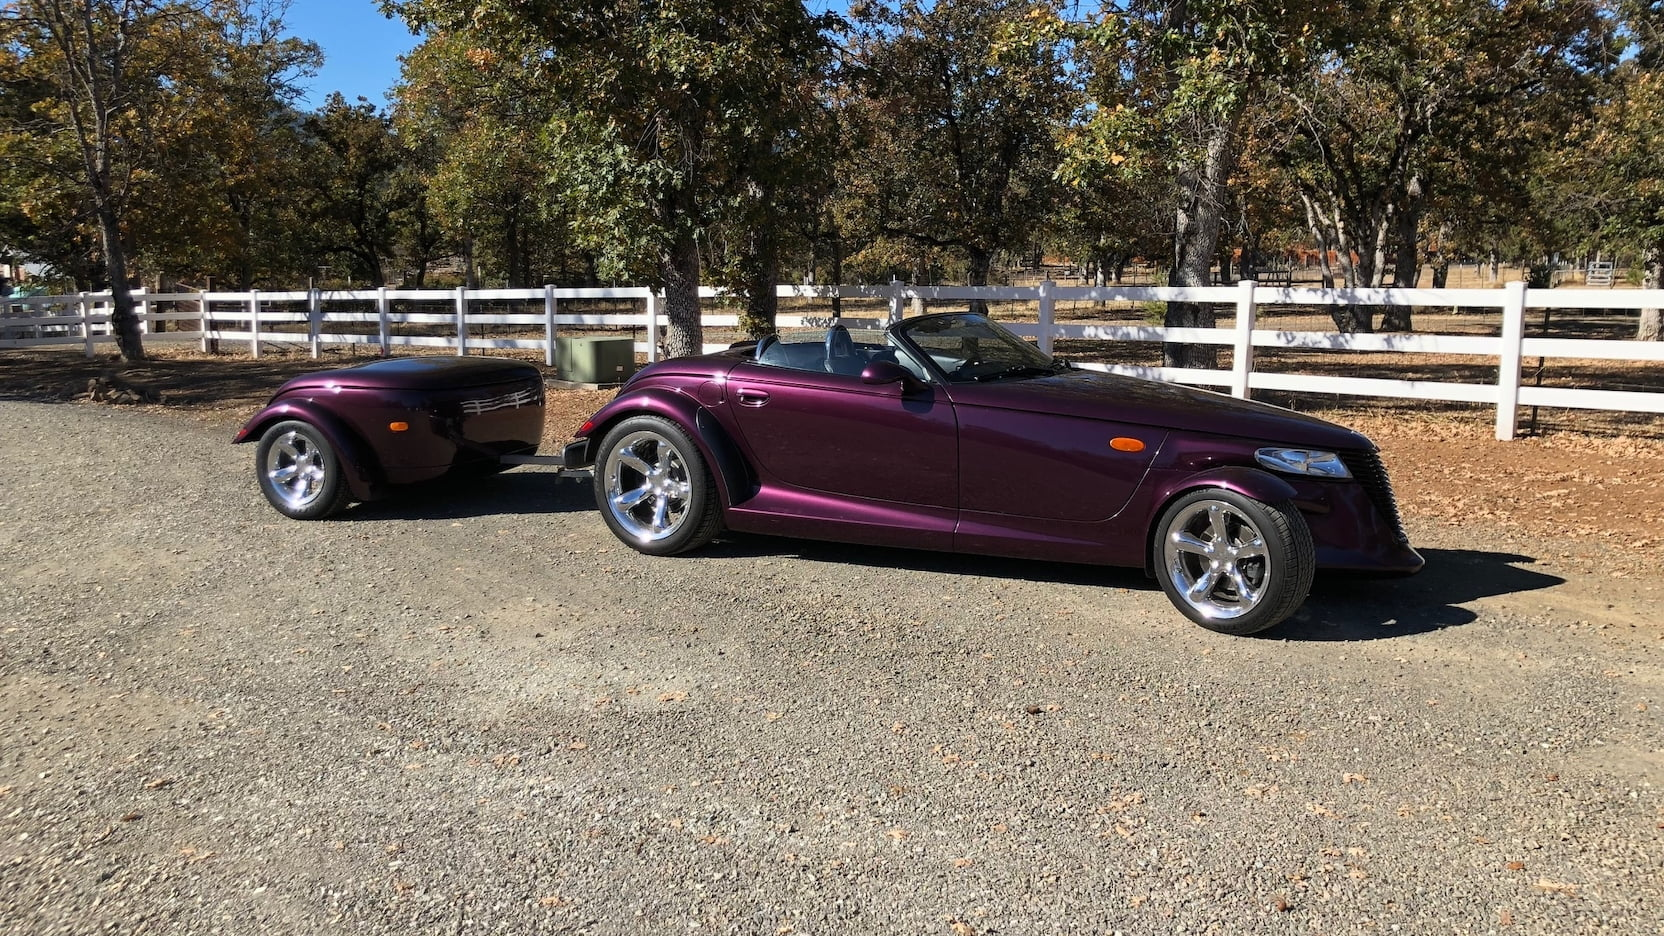 1999 Plymouth Prowler passenger side with trailer